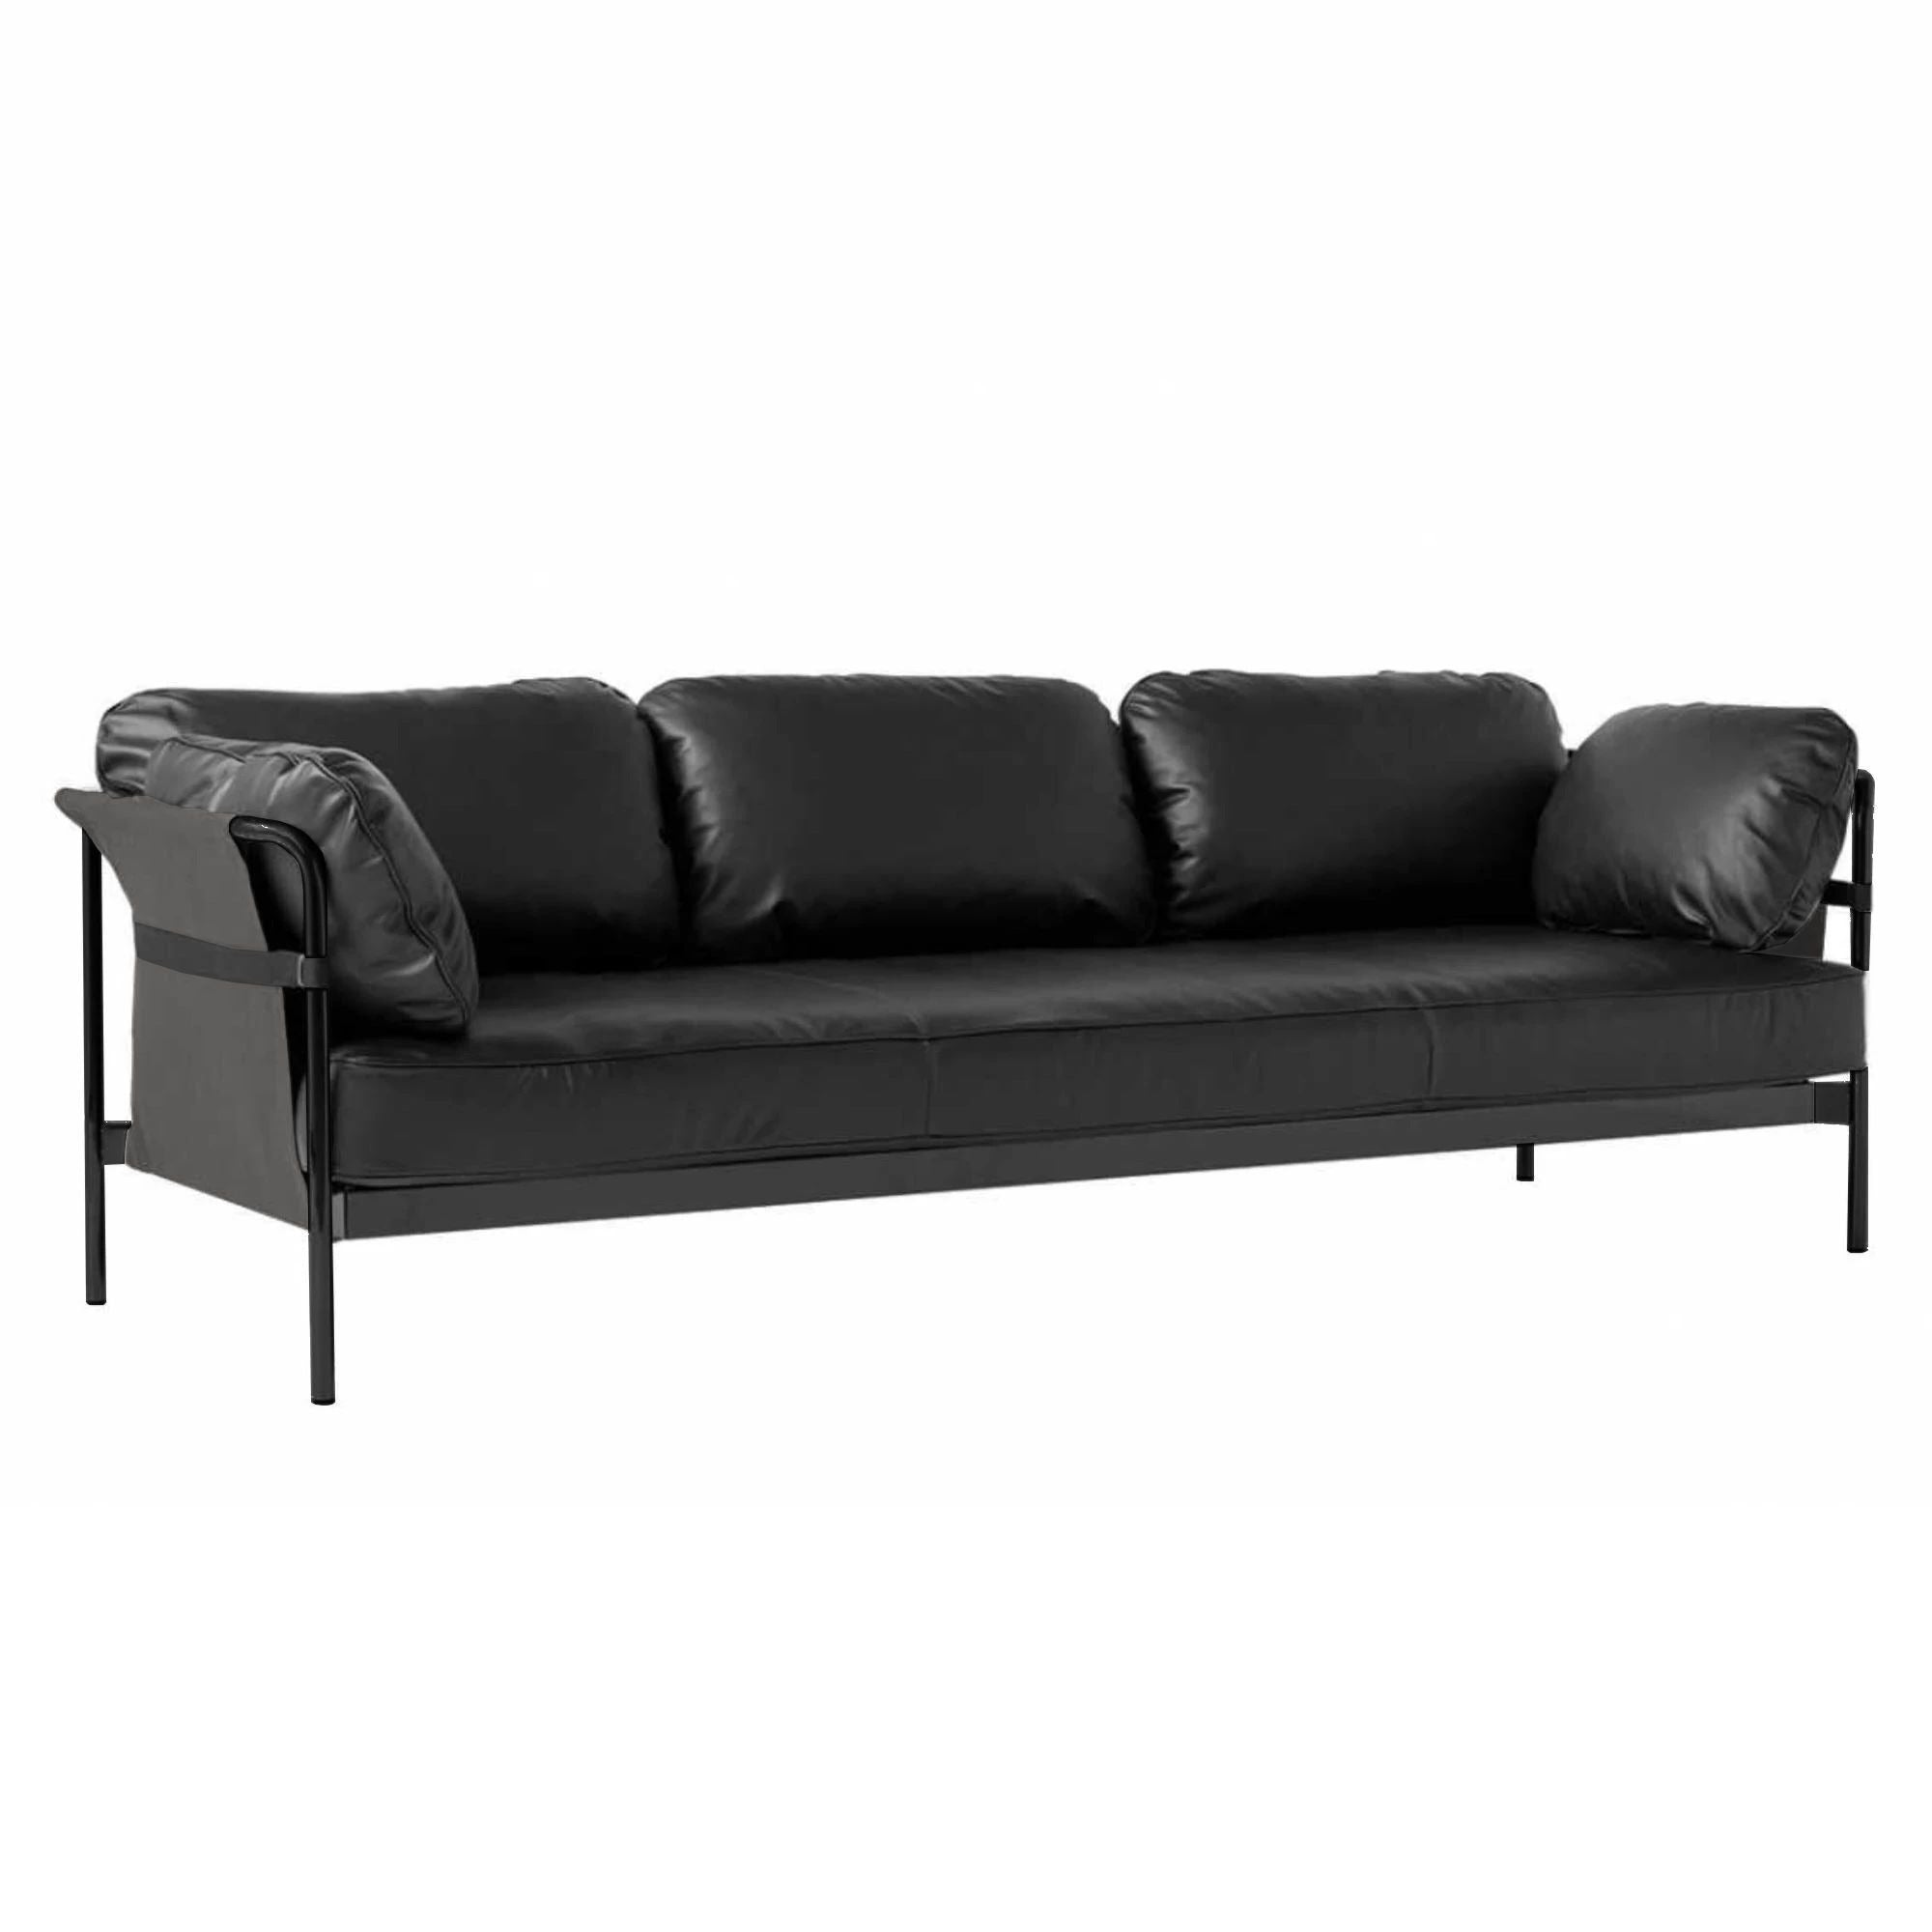 HAY Can 3-Seater Sofa 2.0 , Black-Grey-Silk0842